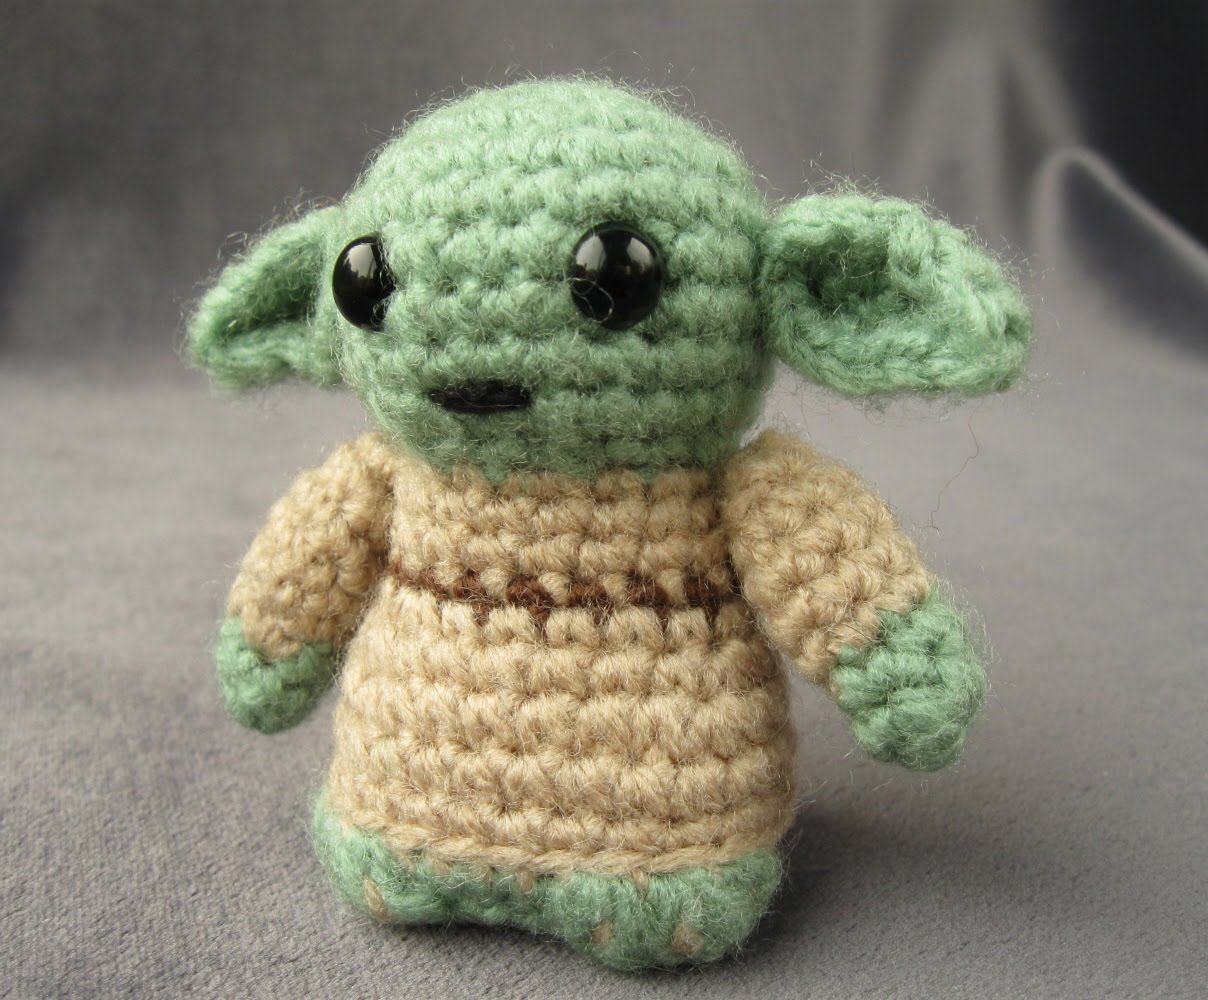 Crochet Yoda Pattern : LucyRavenscar - Crochet Creatures: My patterns for sale on Etsy